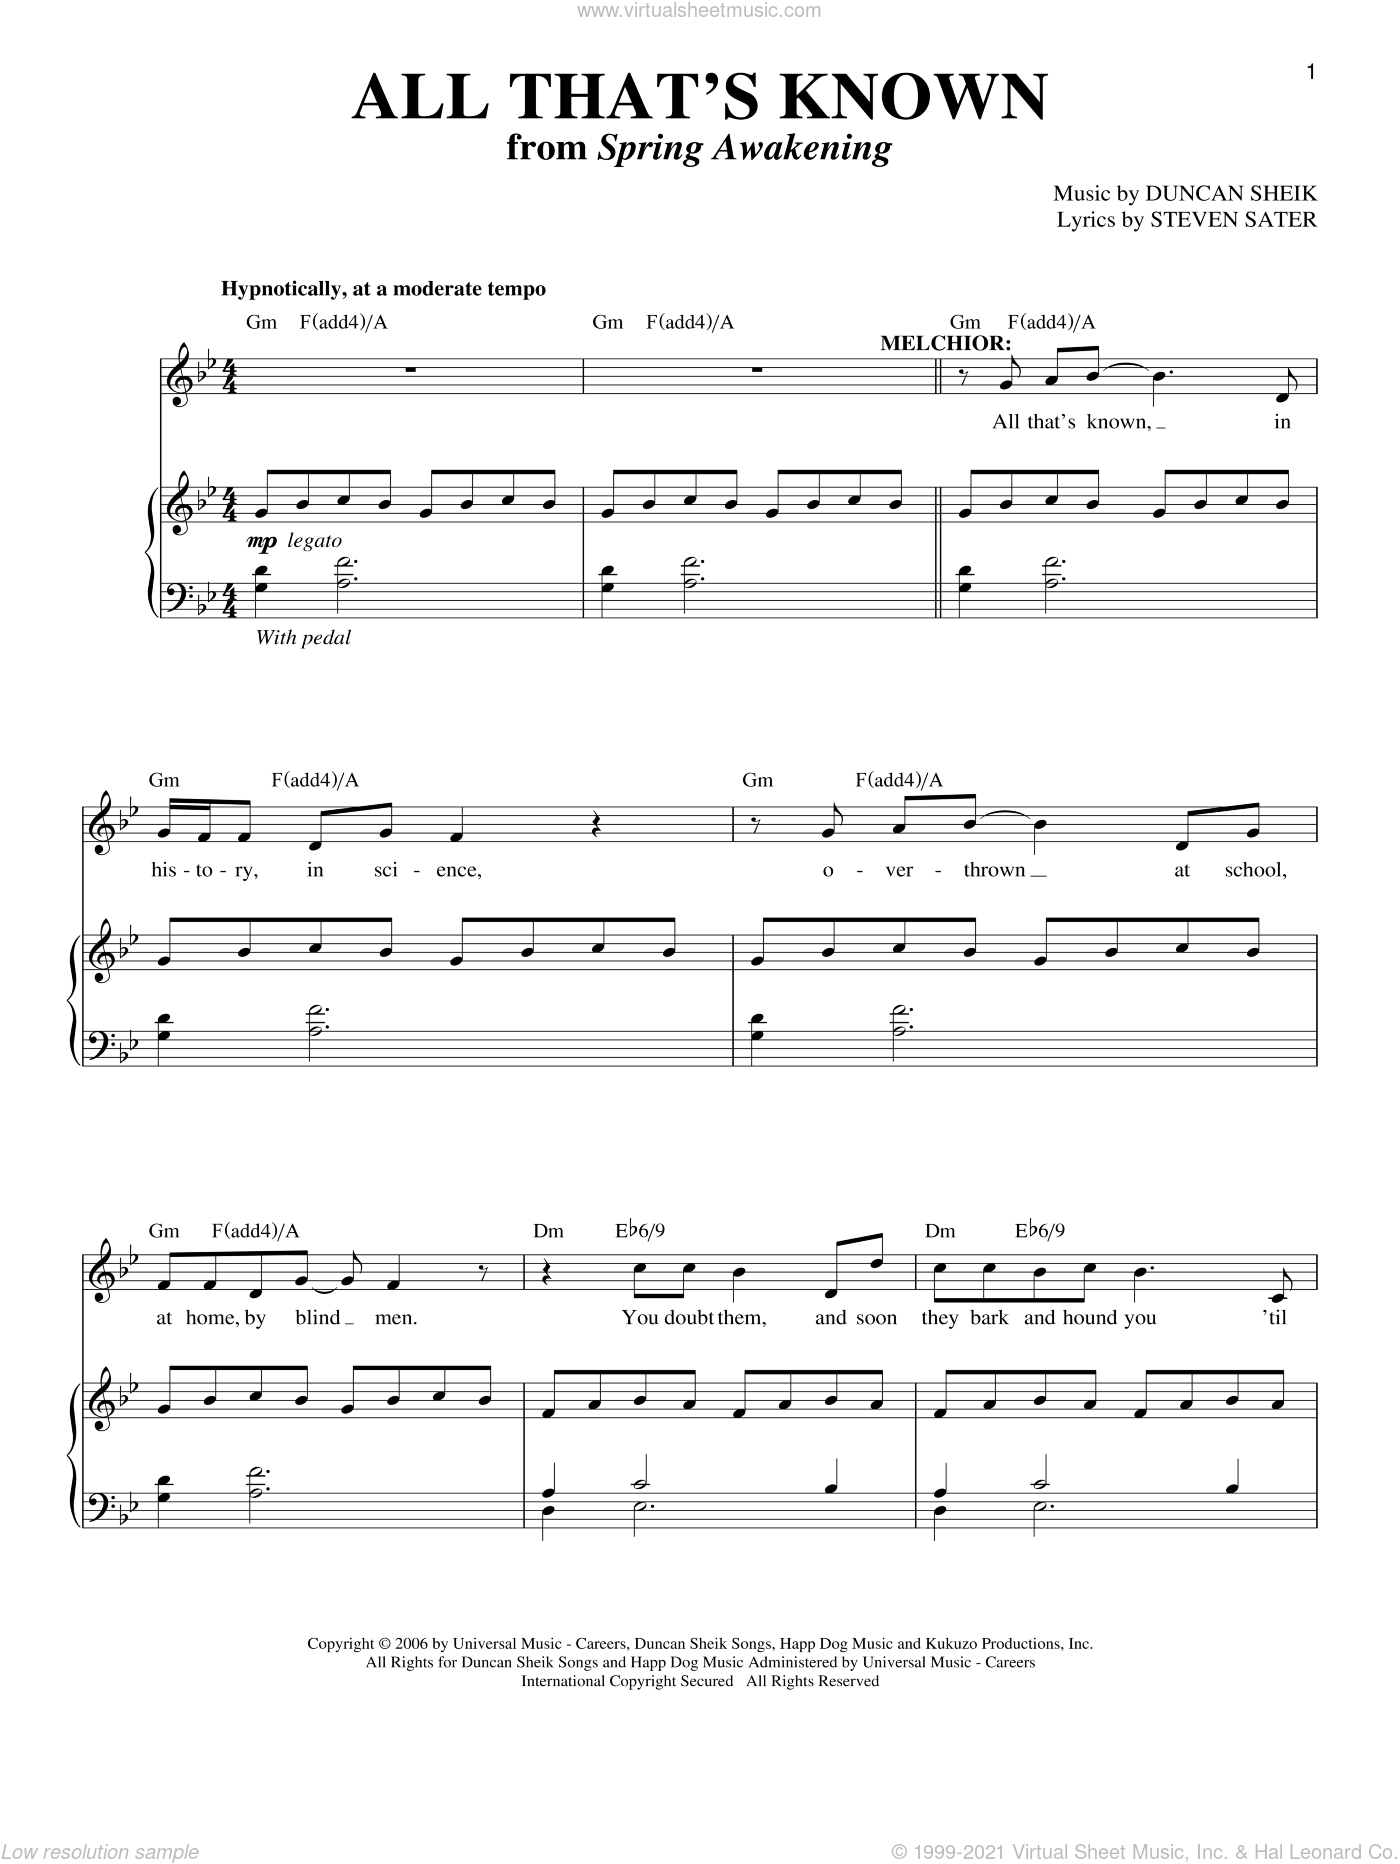 All That's Known sheet music for voice and piano by Duncan Sheik and Steven Sater. Score Image Preview.